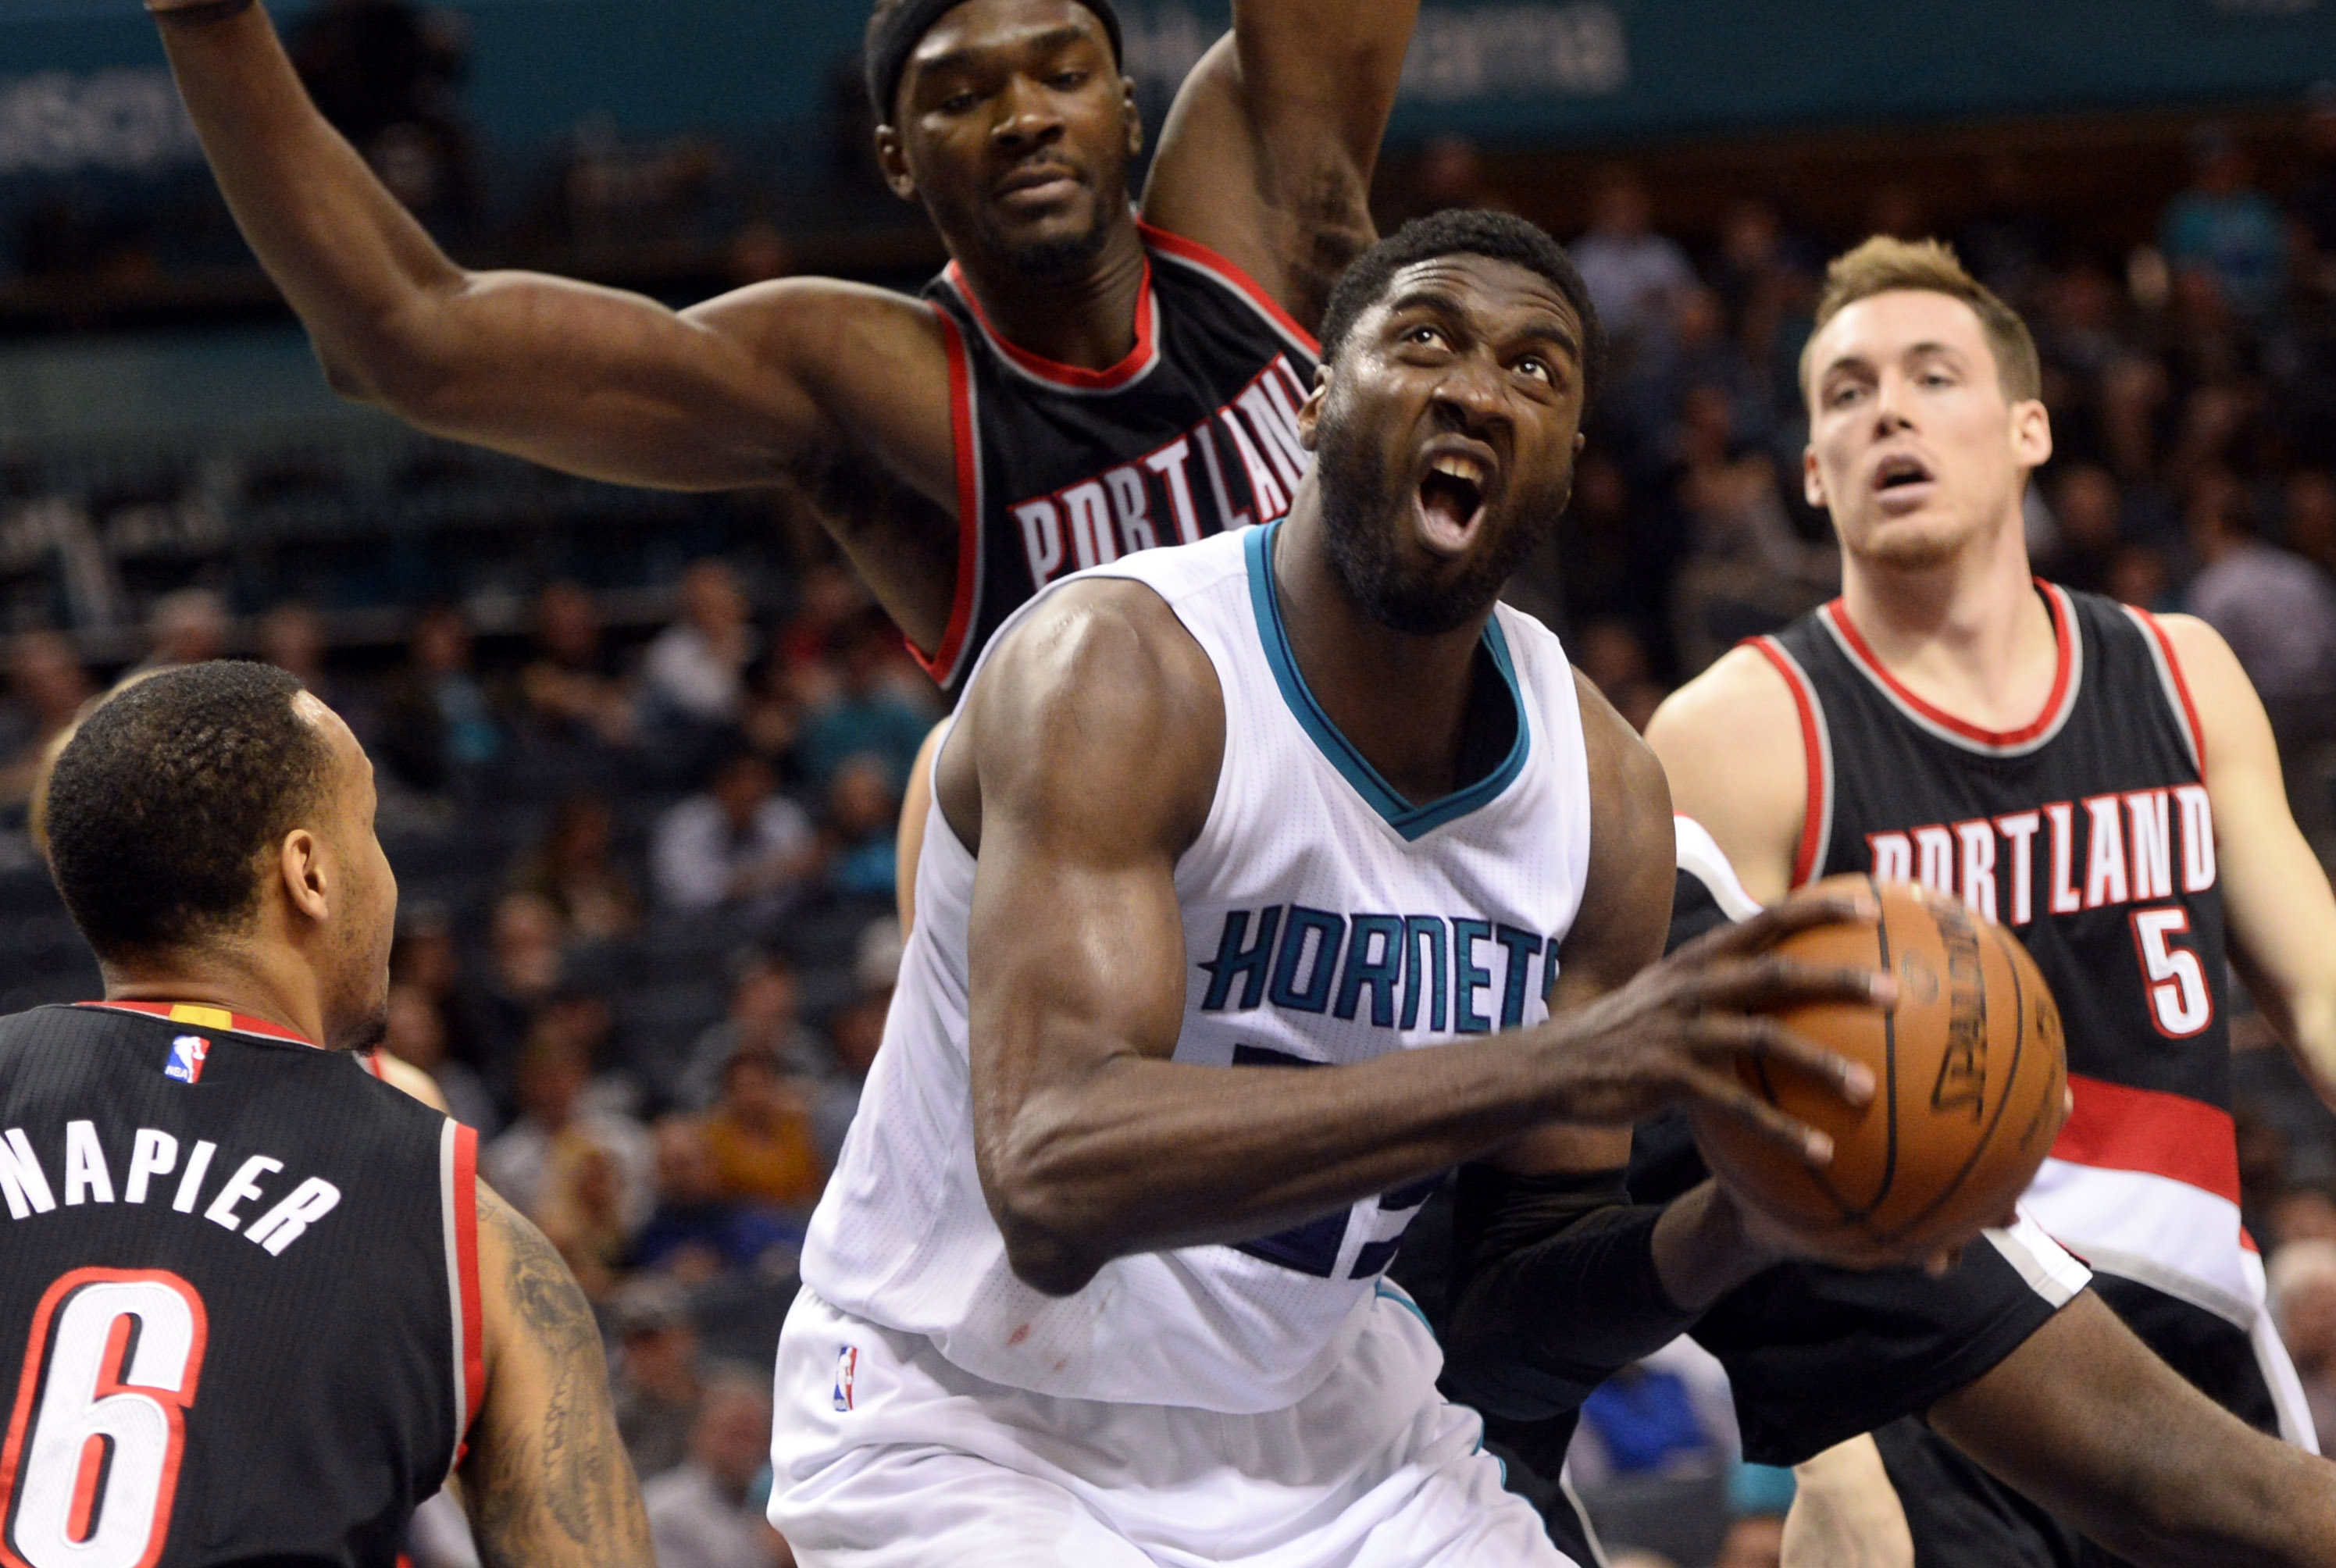 Jan 18, 2017; Charlotte, NC, USA; Charlotte Hornets center Roy Hibbert (55) looks to dunk he ball through the Portland Trail Blazers guard Shabazz Napier (6), forward Noah Vonleh (21) and guard forward Pat Connaughton (5) during the second half of the game at the Spectrum Center. Hornets win 107-85. Mandatory Credit: Sam Sharpe-USA TODAY Sports